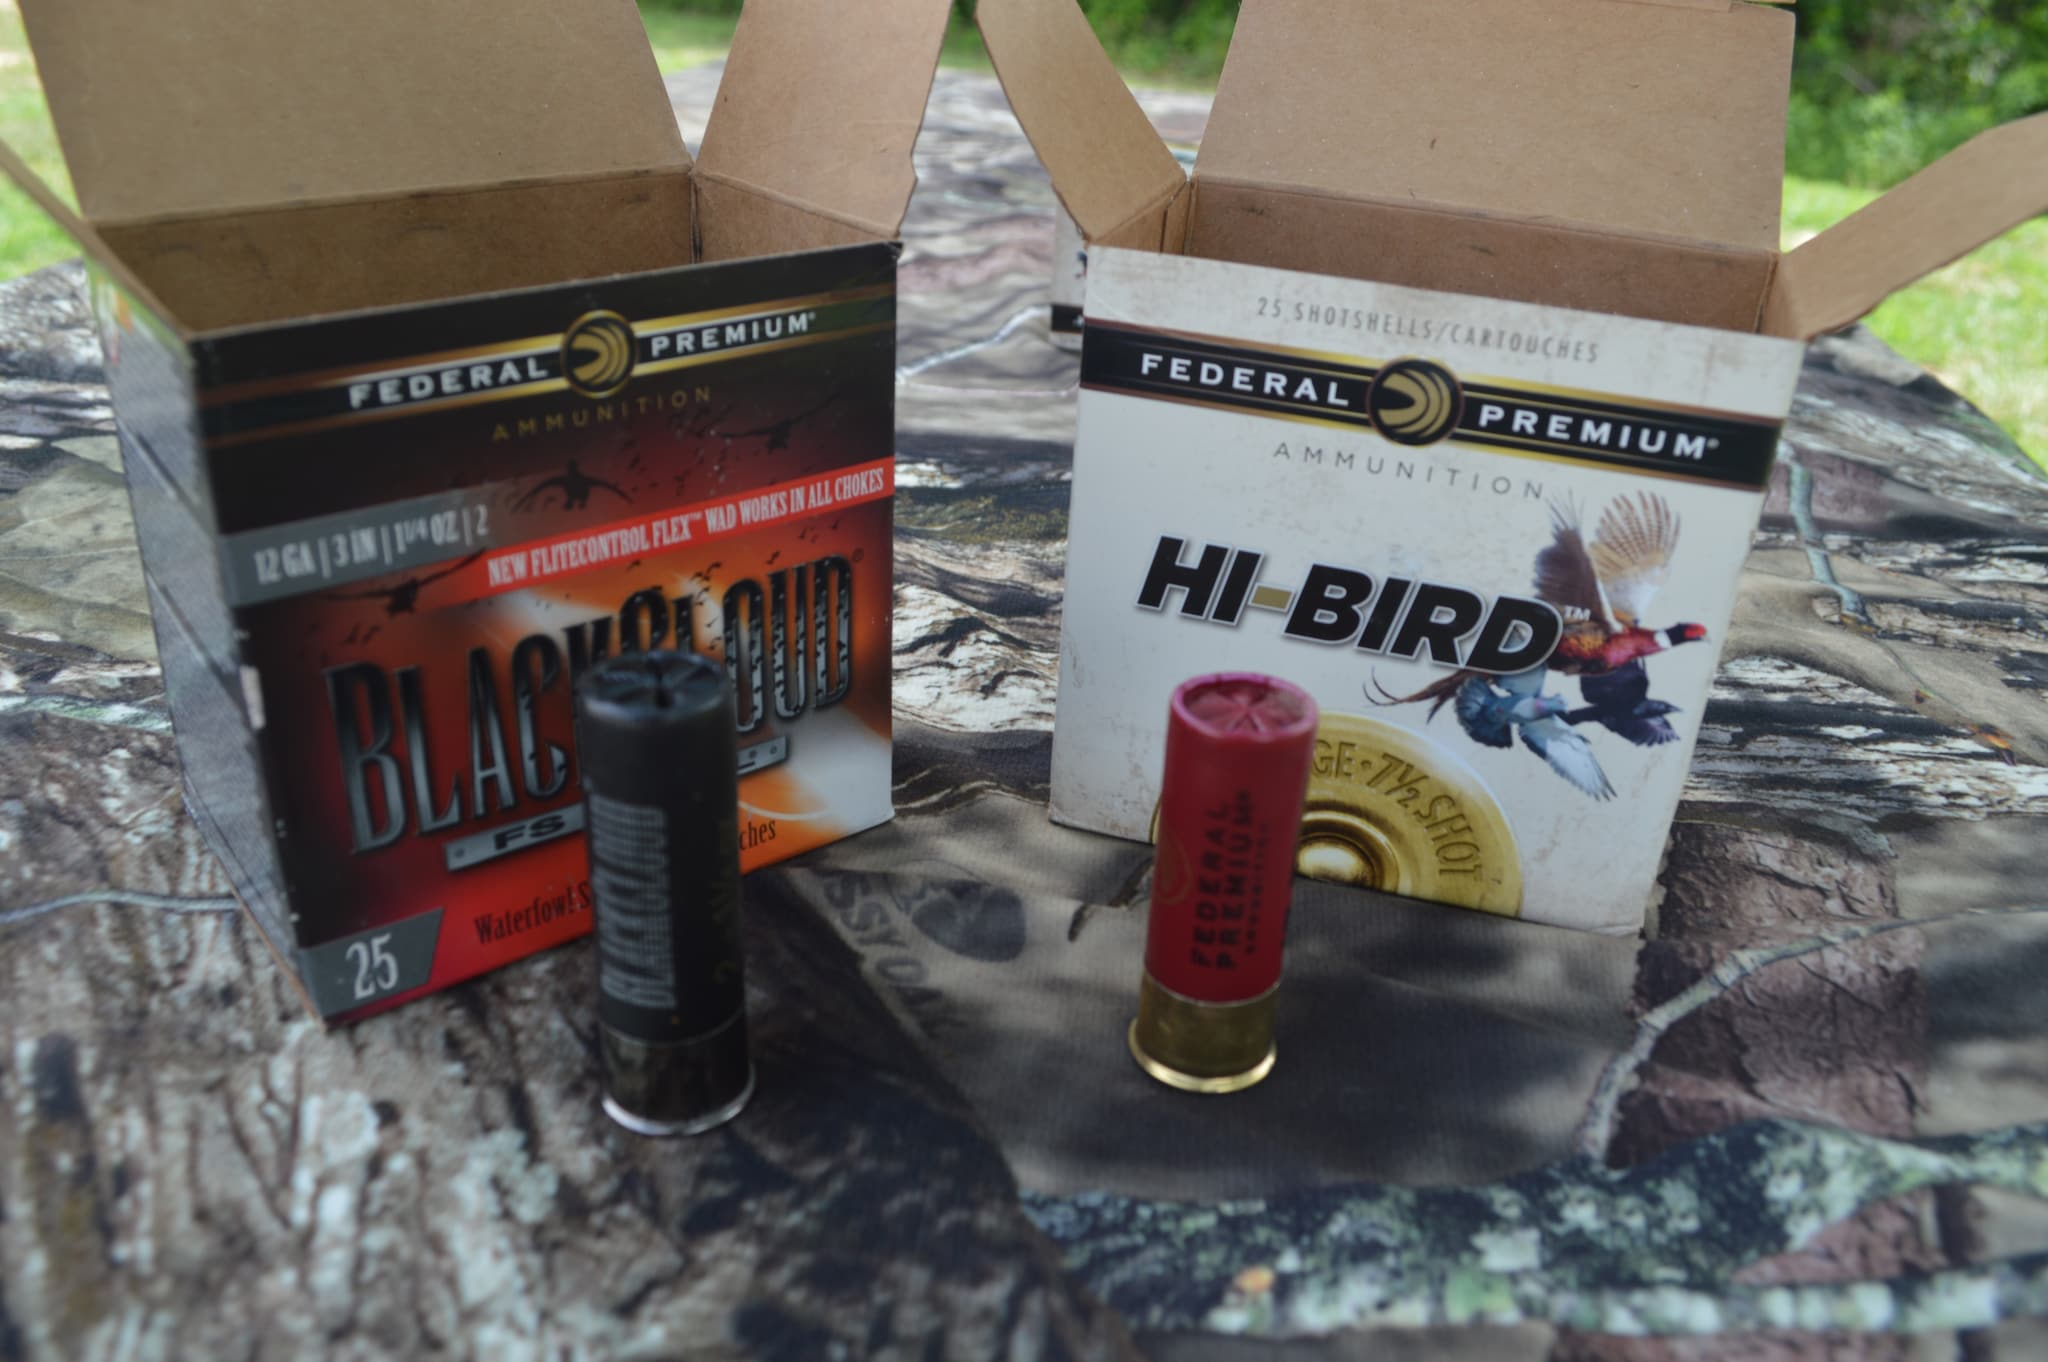 "We shot clays with both of Federal Premium's shotgun rounds for hunters. The new Black Cloud features a re-designed wad that allows it to be fired from any choke, whereas previously Black Cloud could only be fired with one of the companies ammo-specific tubes. While the Black Cloud comes in heavier payloads and longer shell lenghths for waterfowlers, Hi Bird has been released in 2-3/4"" 12-gauge options for upland game like doves, pigeons, and pheasants. The wad technology in Hi Bird is designed to decrease recoil and produce consistent patterns. (Photo: Kristin Alberts)"